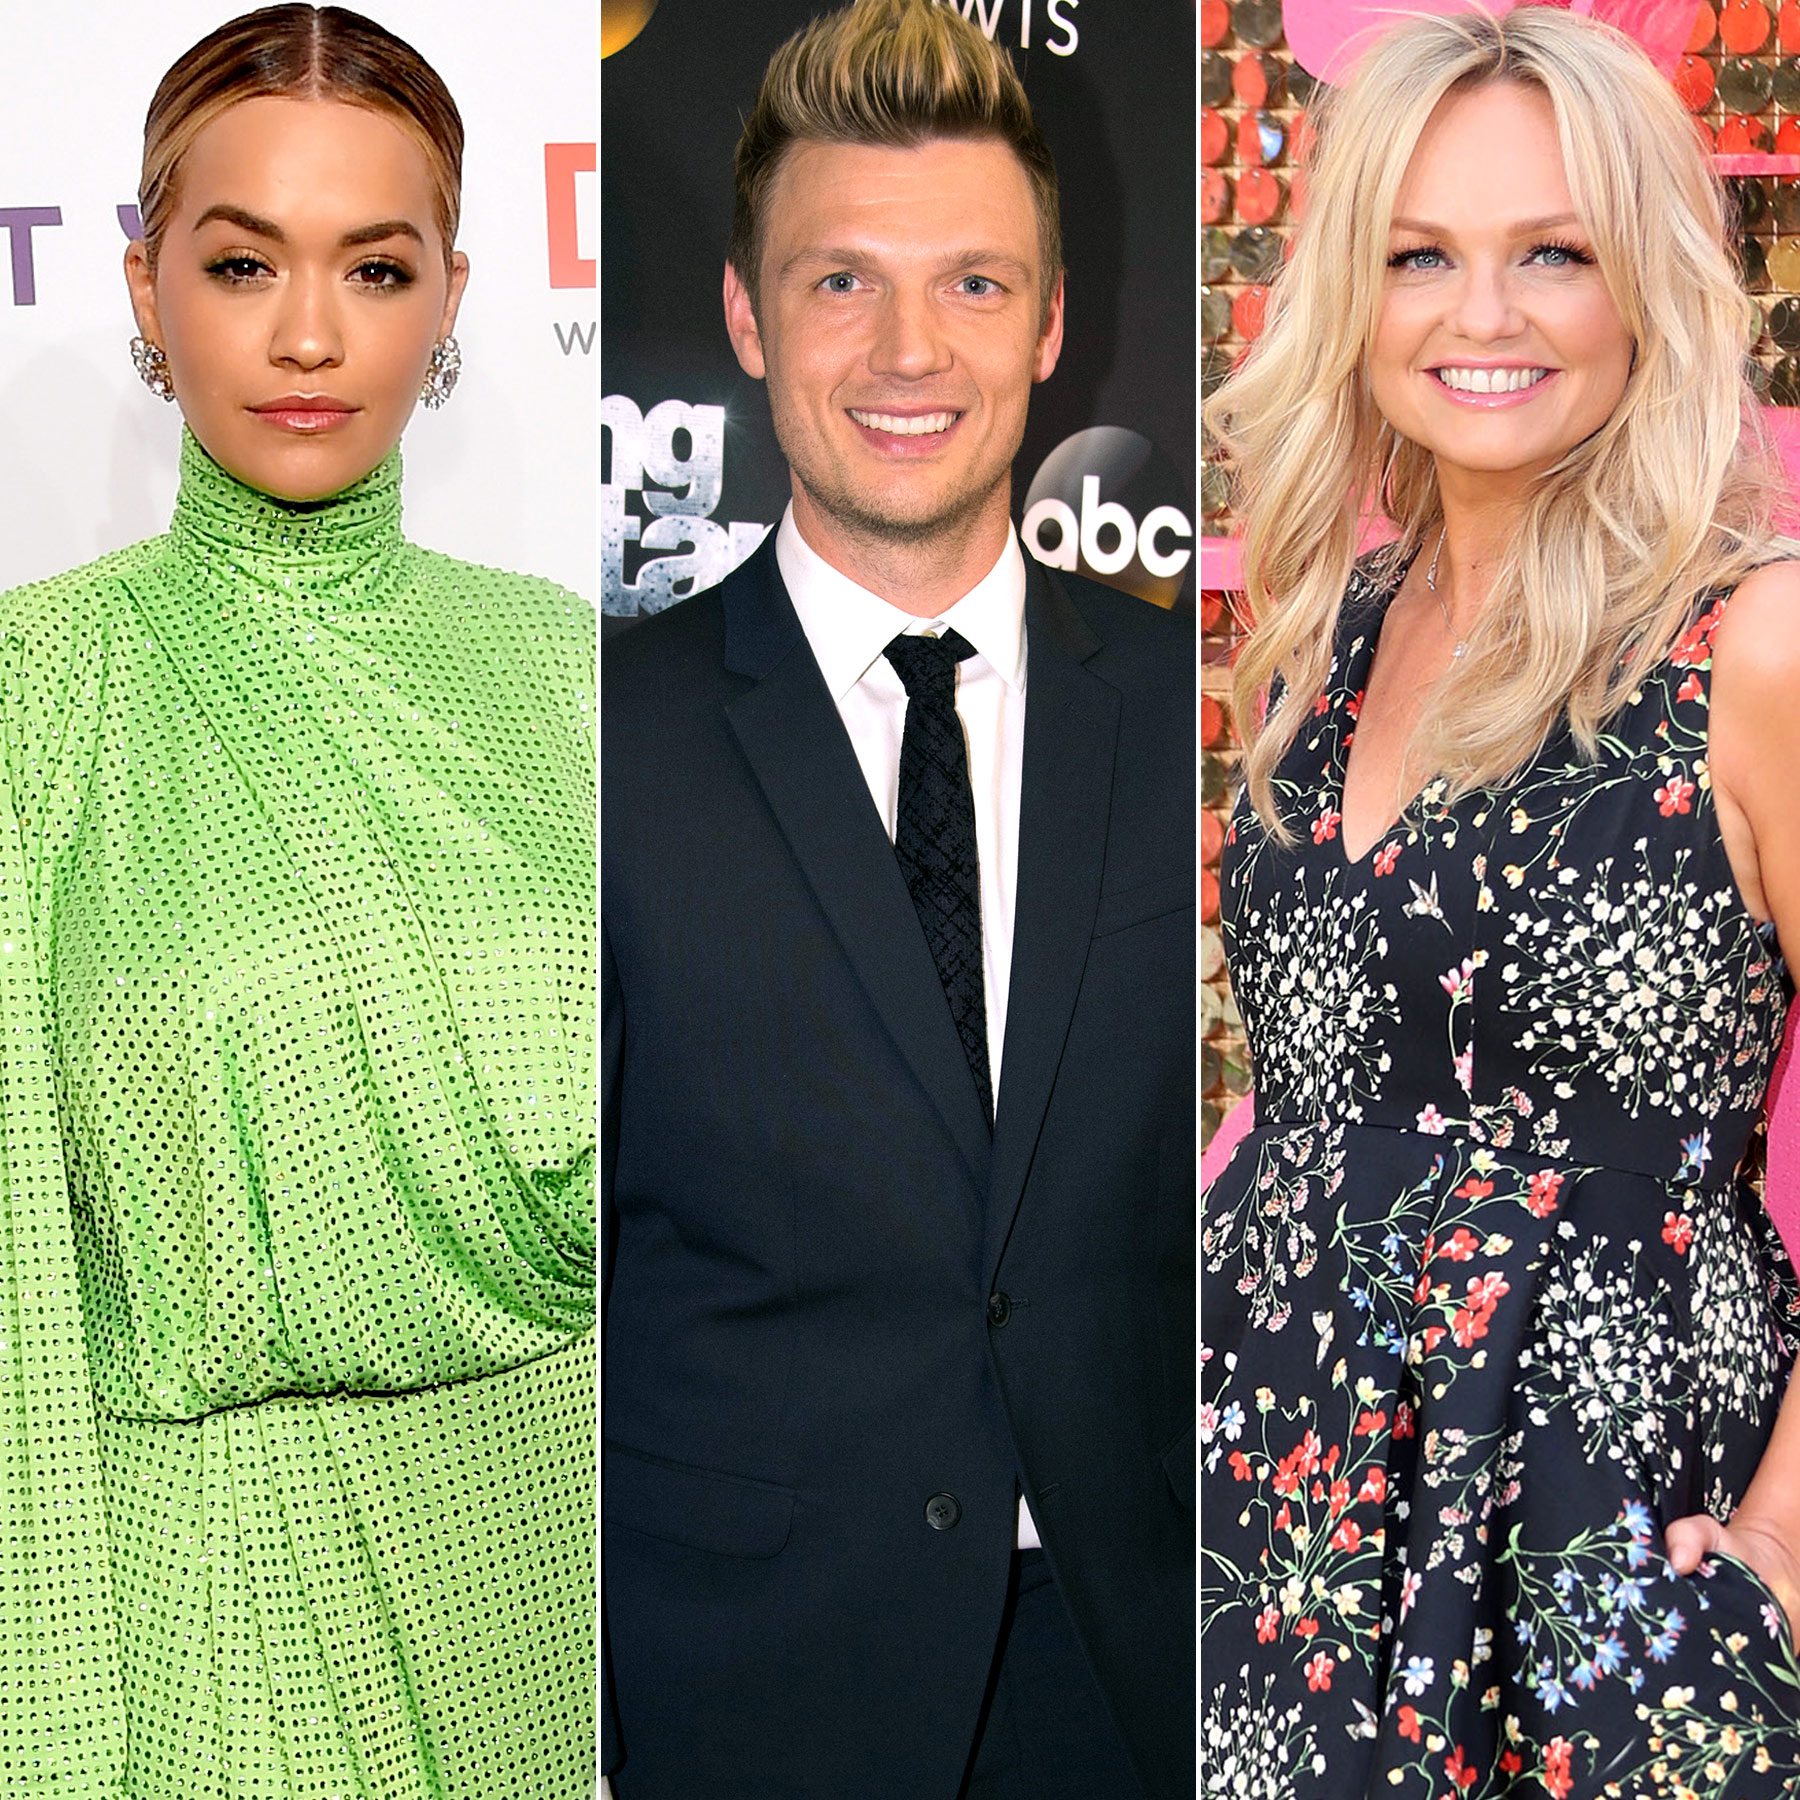 Rita Ora, Nick Carter and Emma Bunton